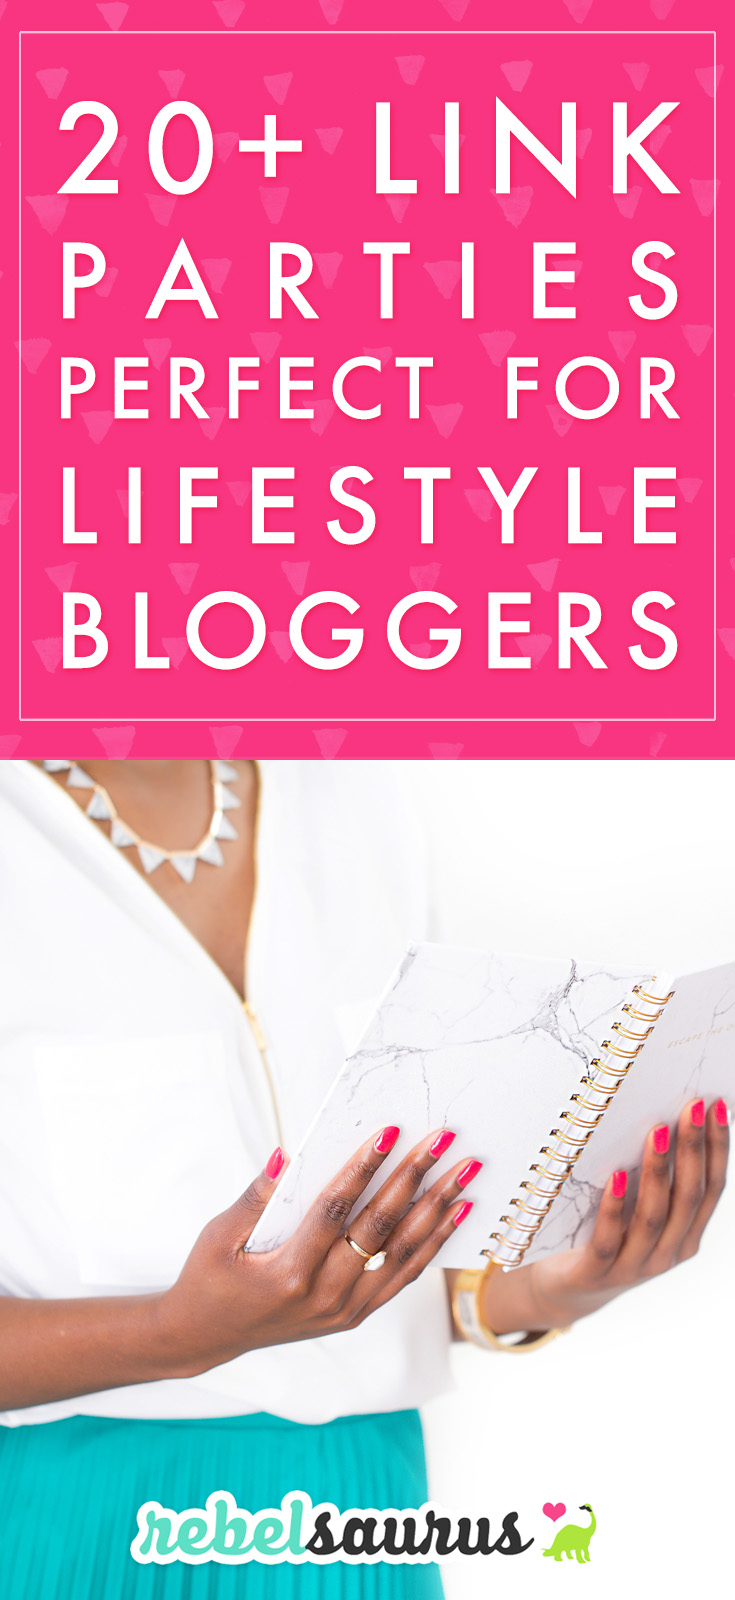 "If you're looking for a way to get new eyeballs on your lifestyle blog posts, such as recipes or DIY projects from your blog, here are 20+ link parties for lifestyle bloggers. Link parties, or linky parties, are a way for bloggers to add their posts weekly to another blogger's ""party"" on a specific blog page and connect with other bloggers online."